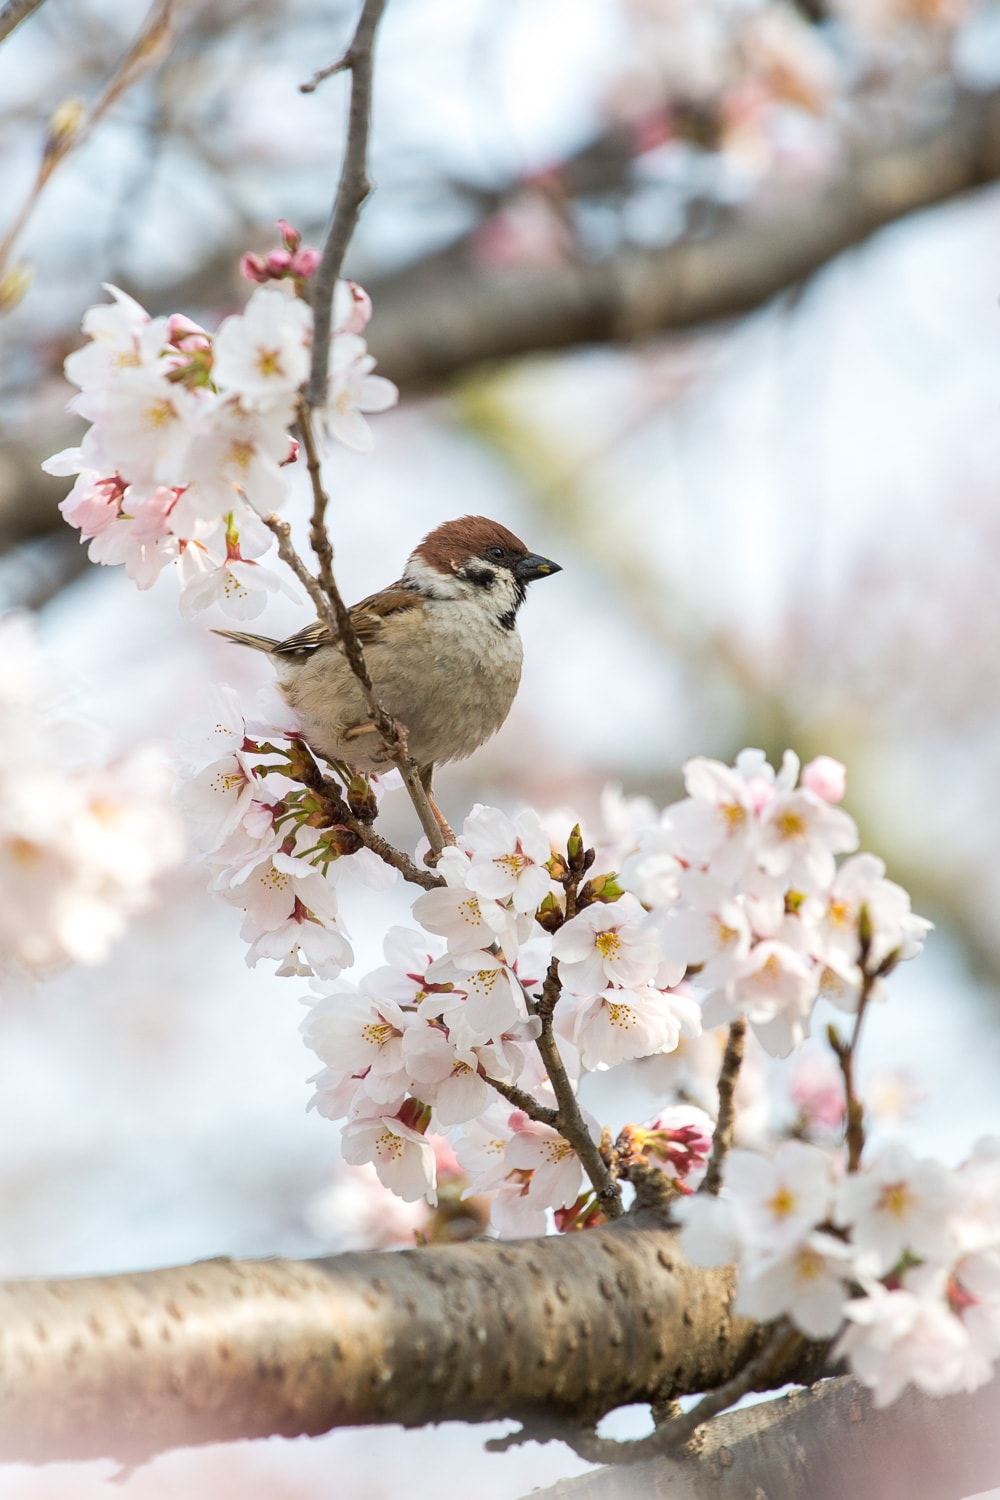 Sparrow and cherry blossoms on the Path of Philosophy in Kyoto, Japan